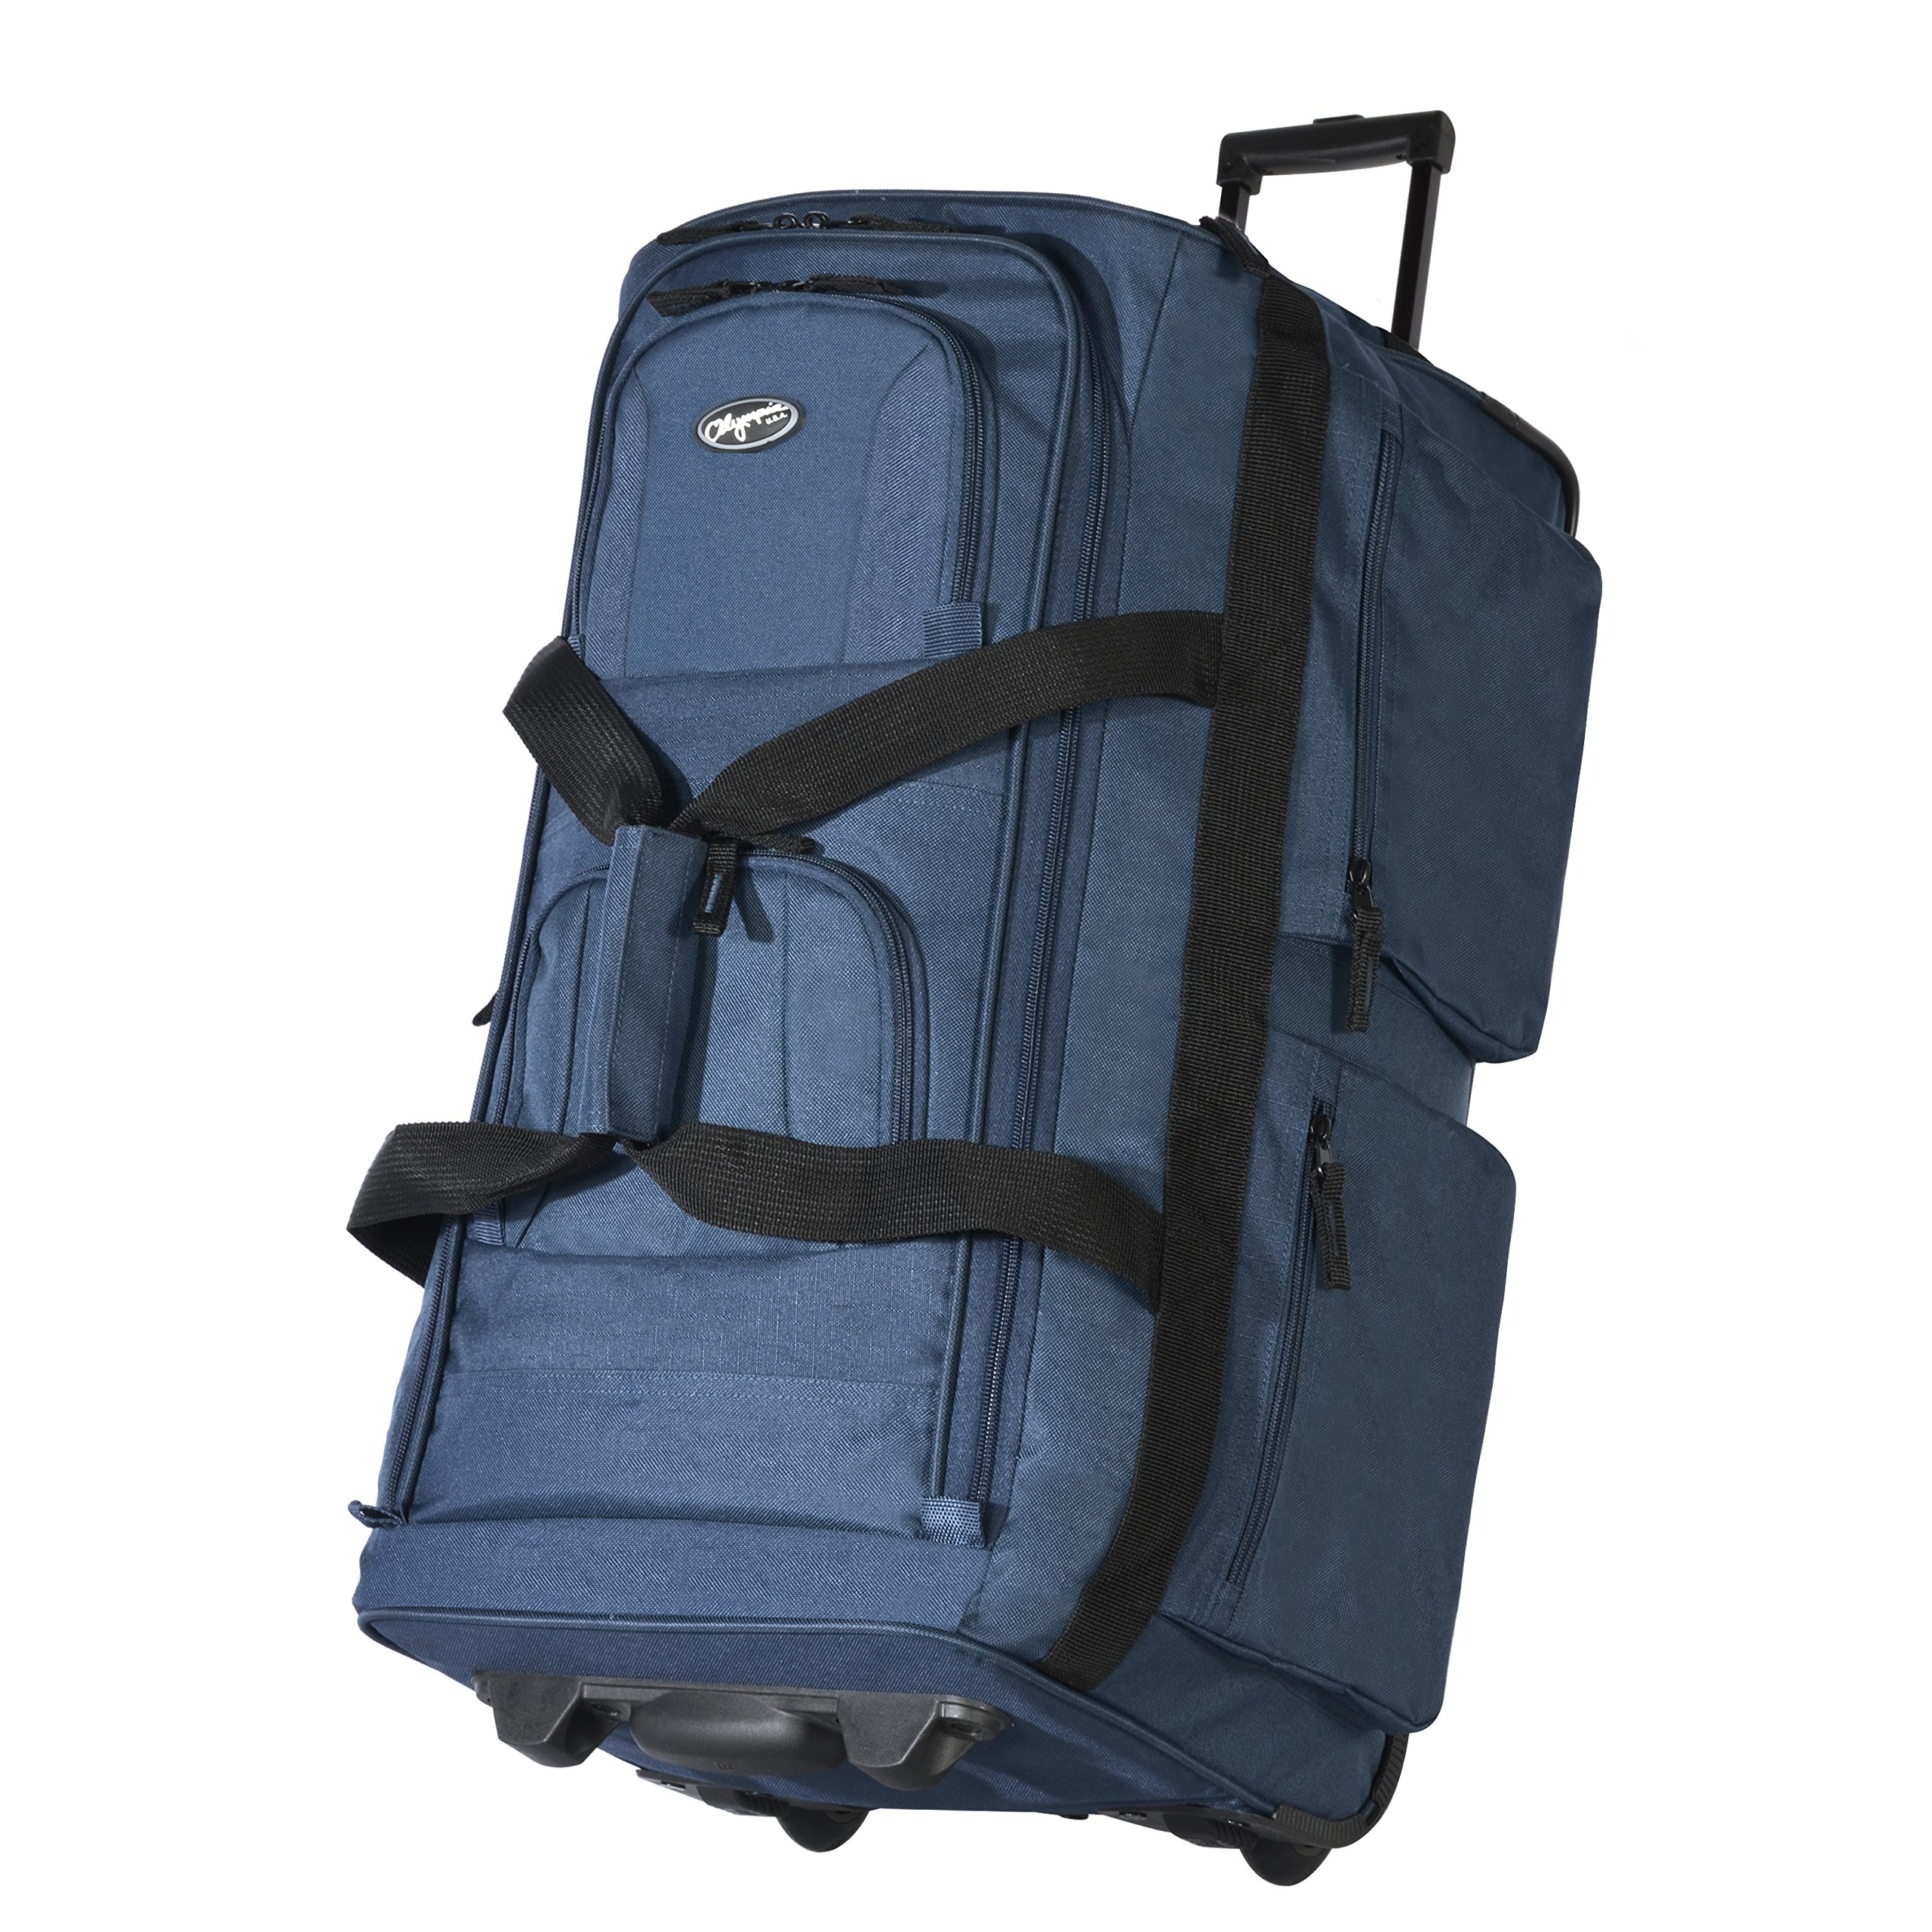 Olympia Luggage 29'' 8 Pocket Rolling Duffel Bag (Navy w/ Black - Exclusive Color)